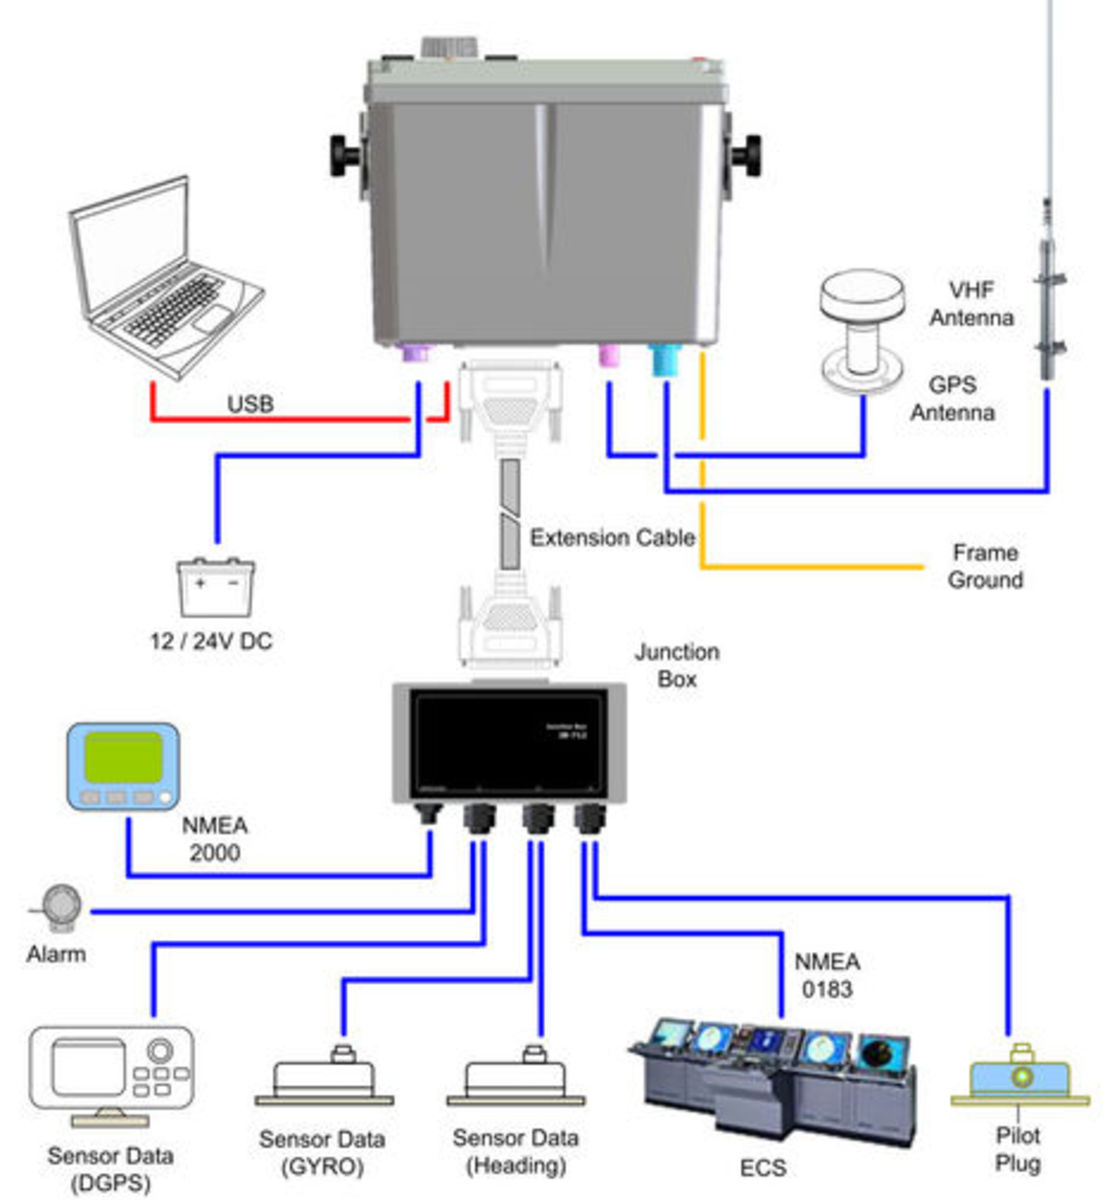 Amec Camino 701 Class A Ais First With Nearly Complete Nmea 2000 Network Wiring Diagrams Connection Diagram Apanbo